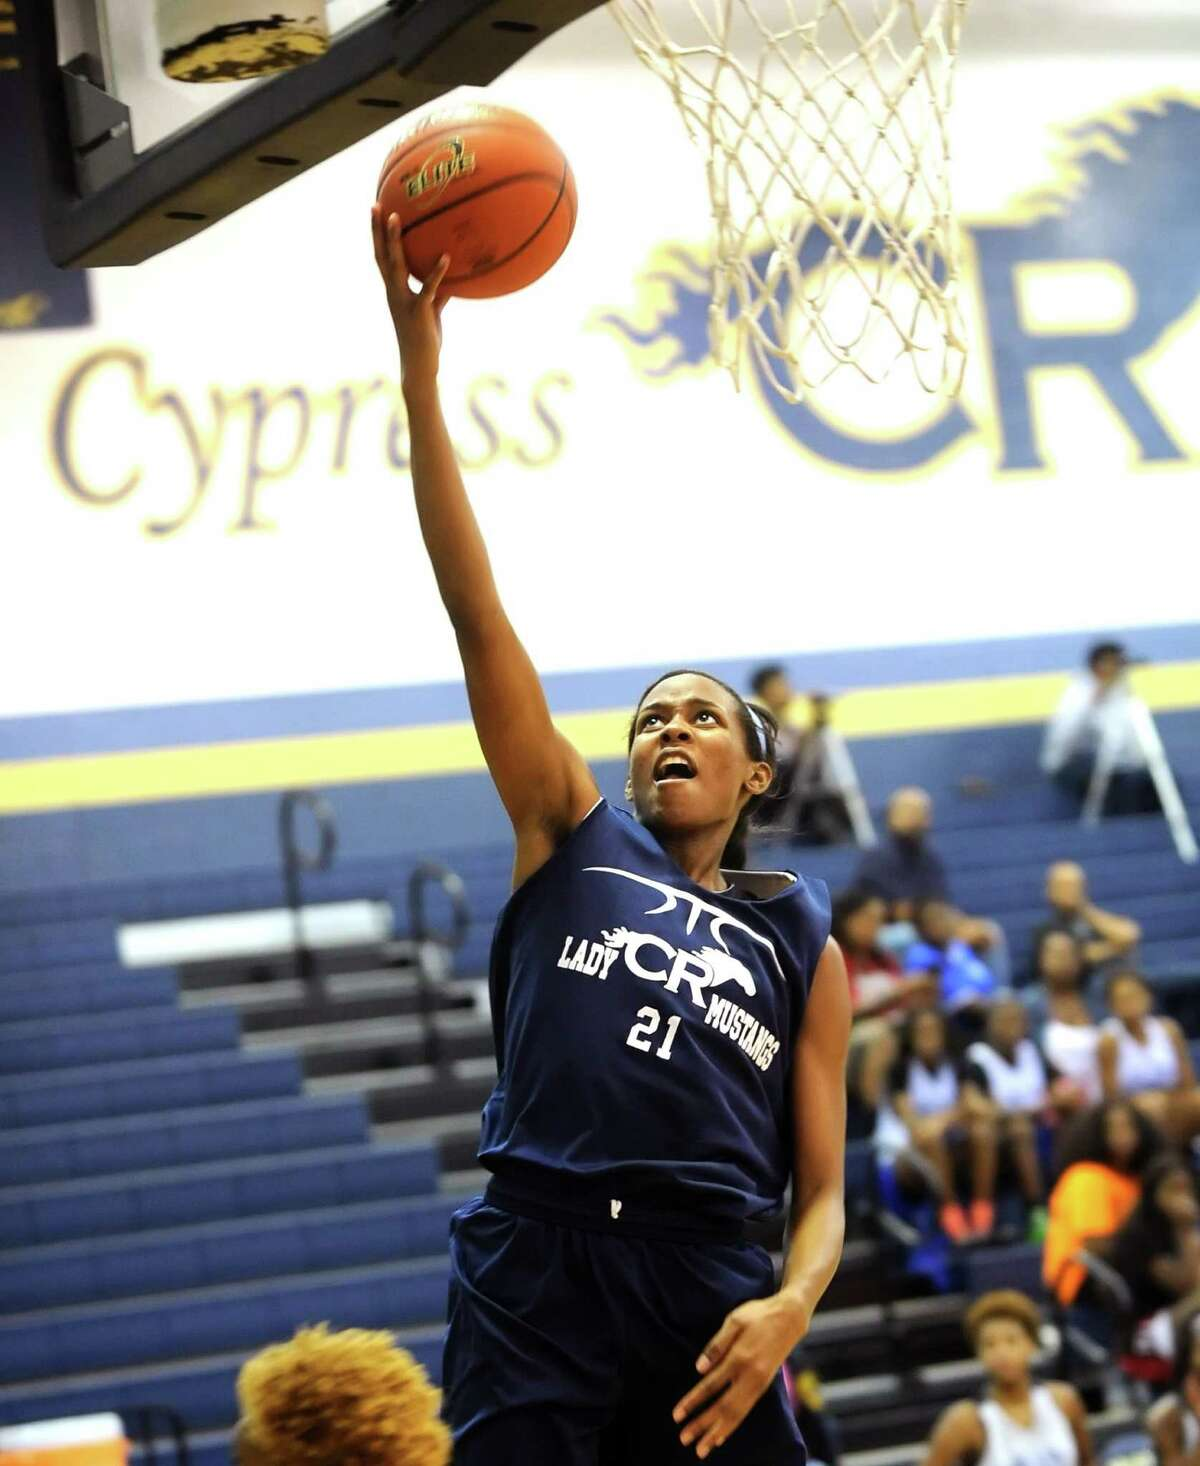 After missing most of last season with a knee injury, Cy Ranch's Sydney Coleman is ready to come back strong this year.